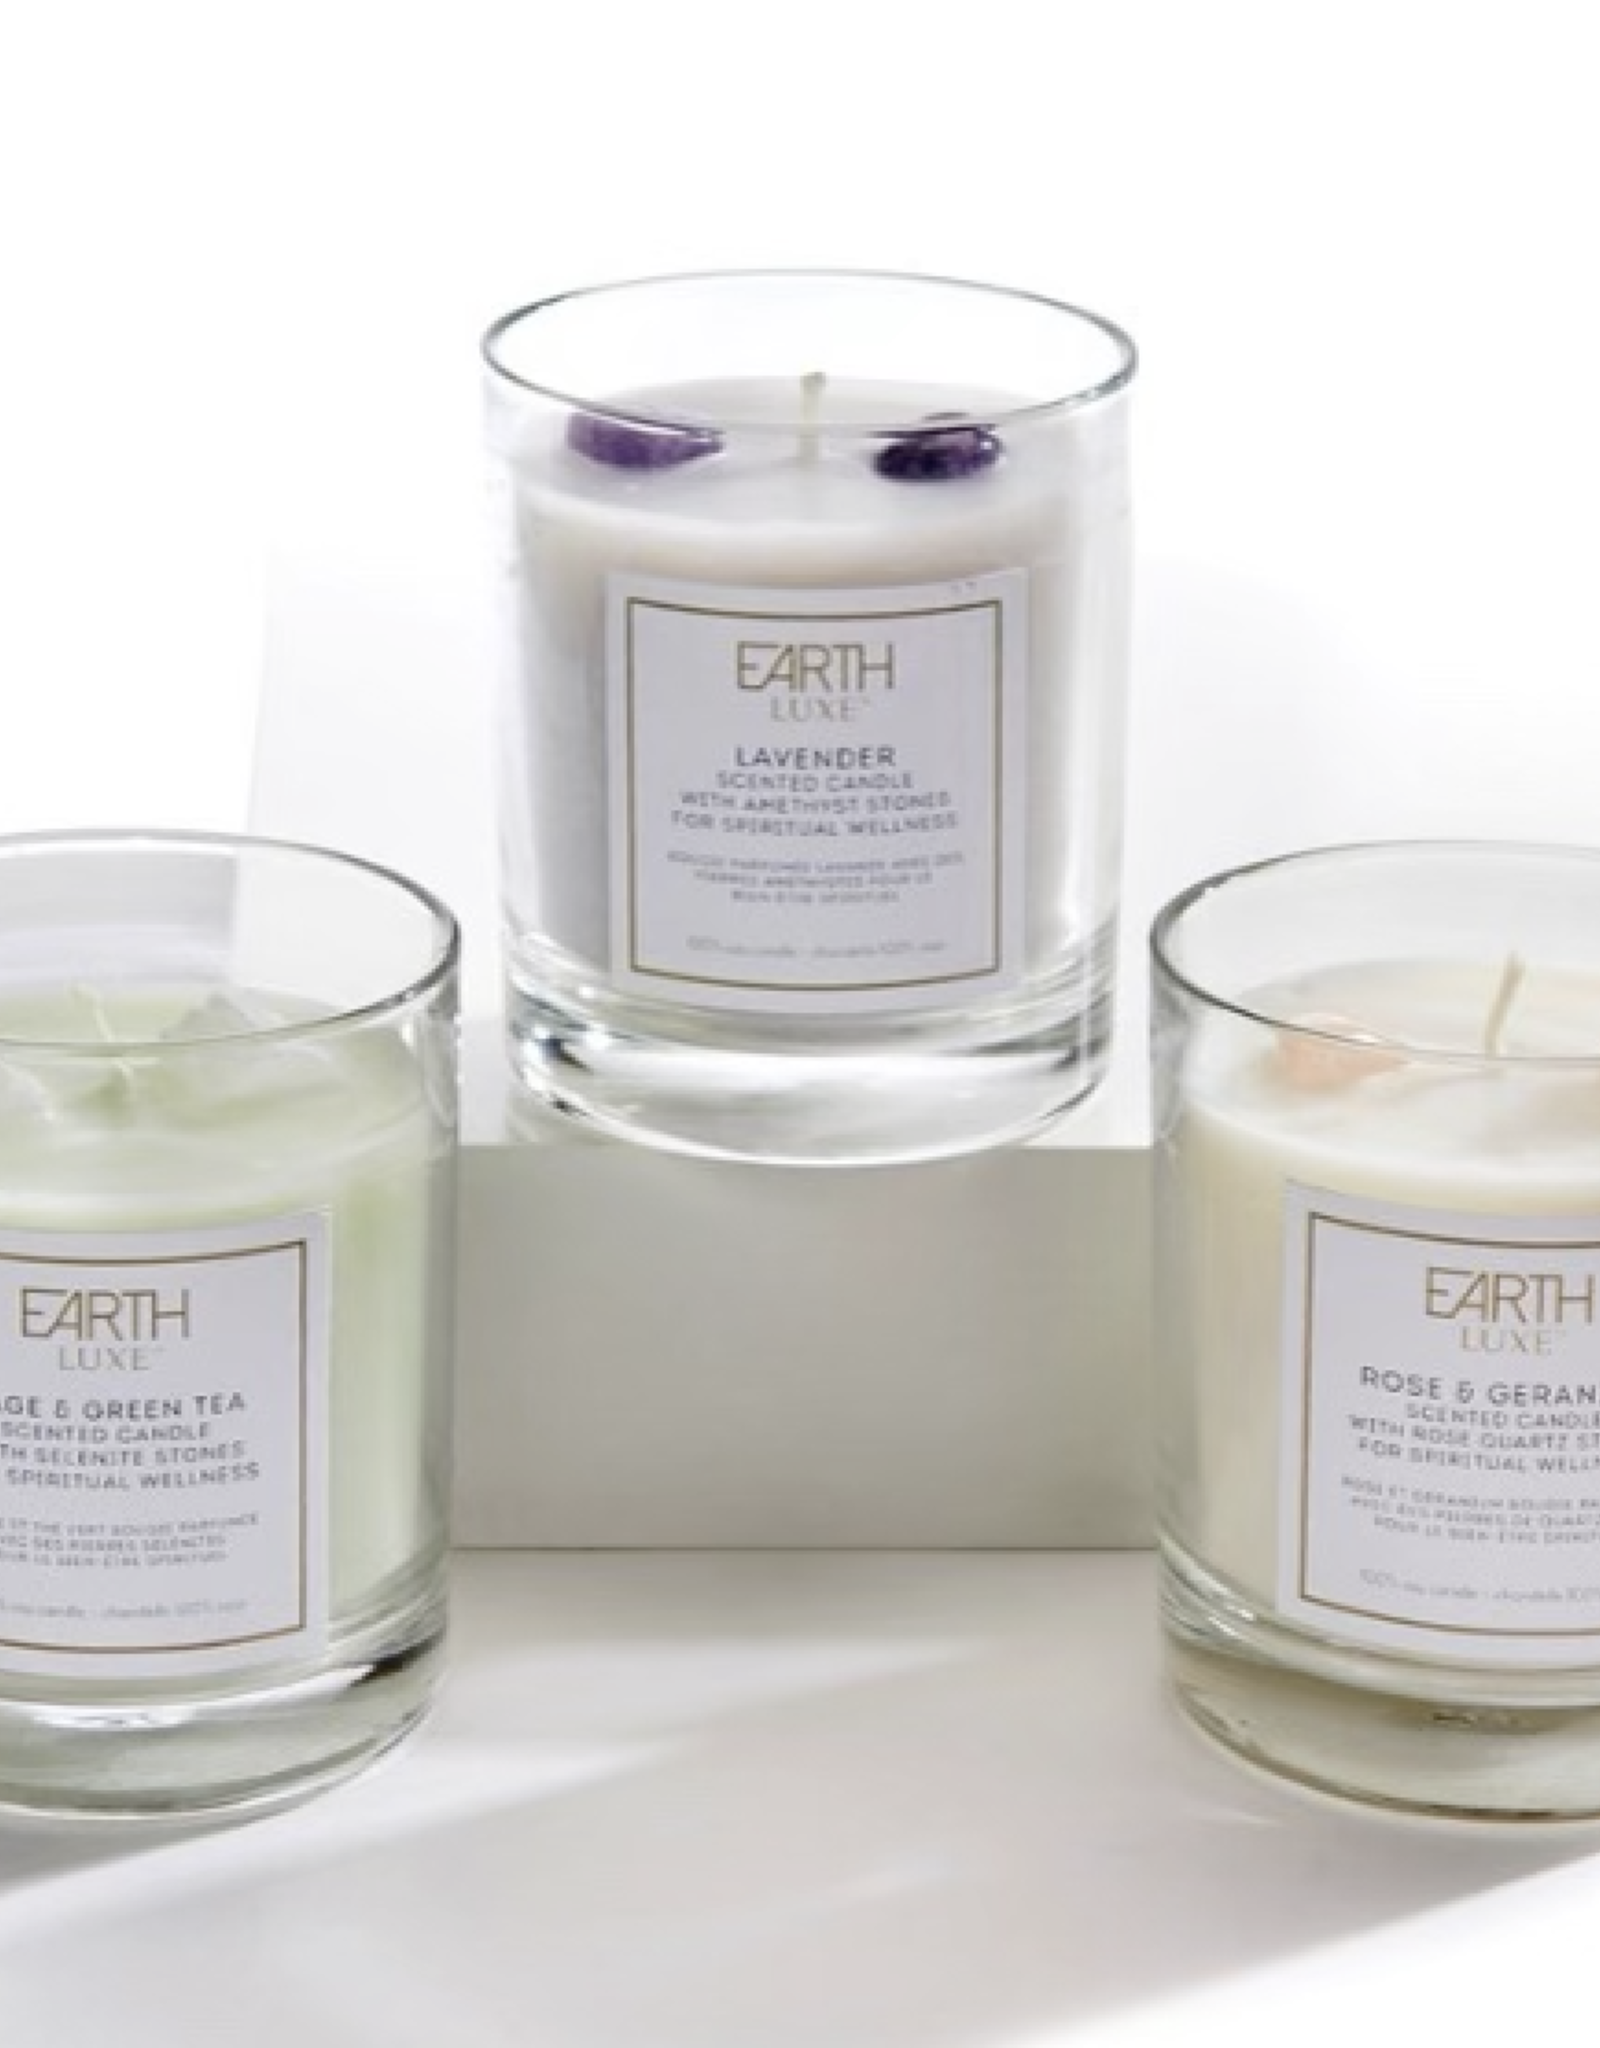 Earth Luxe Crystal Wellness Candle